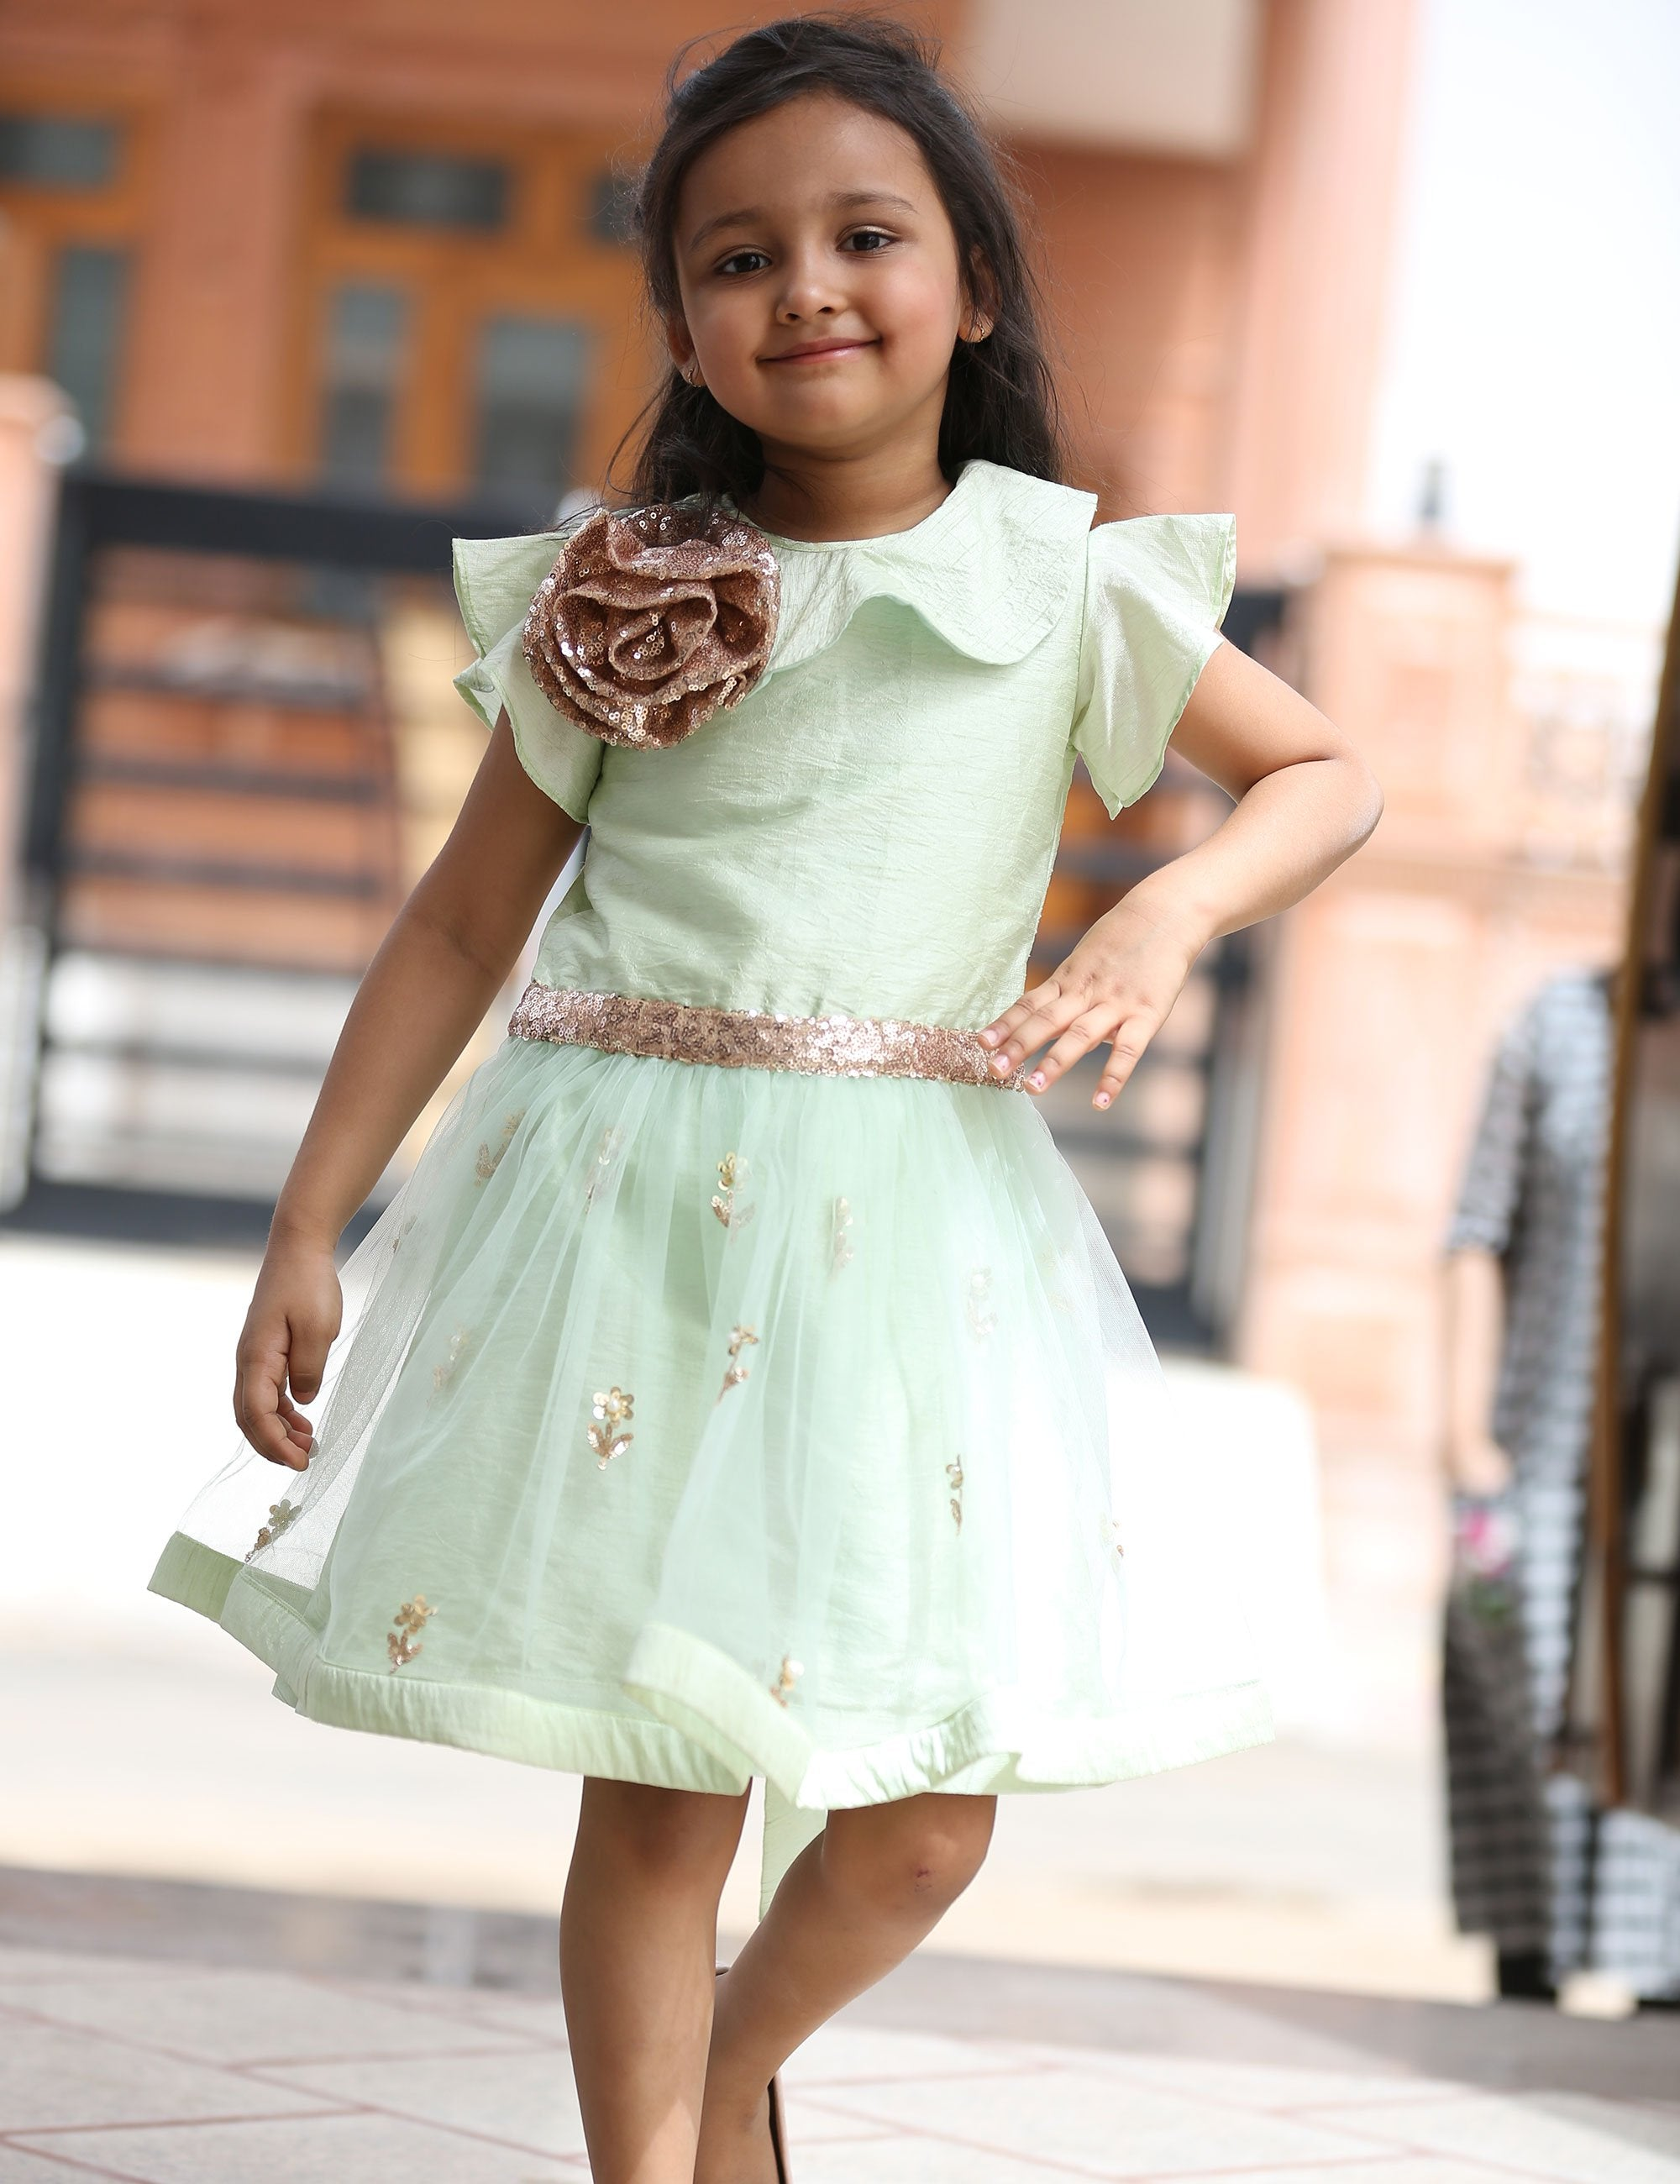 Aqua Green Dress with Sequence Design for Girls